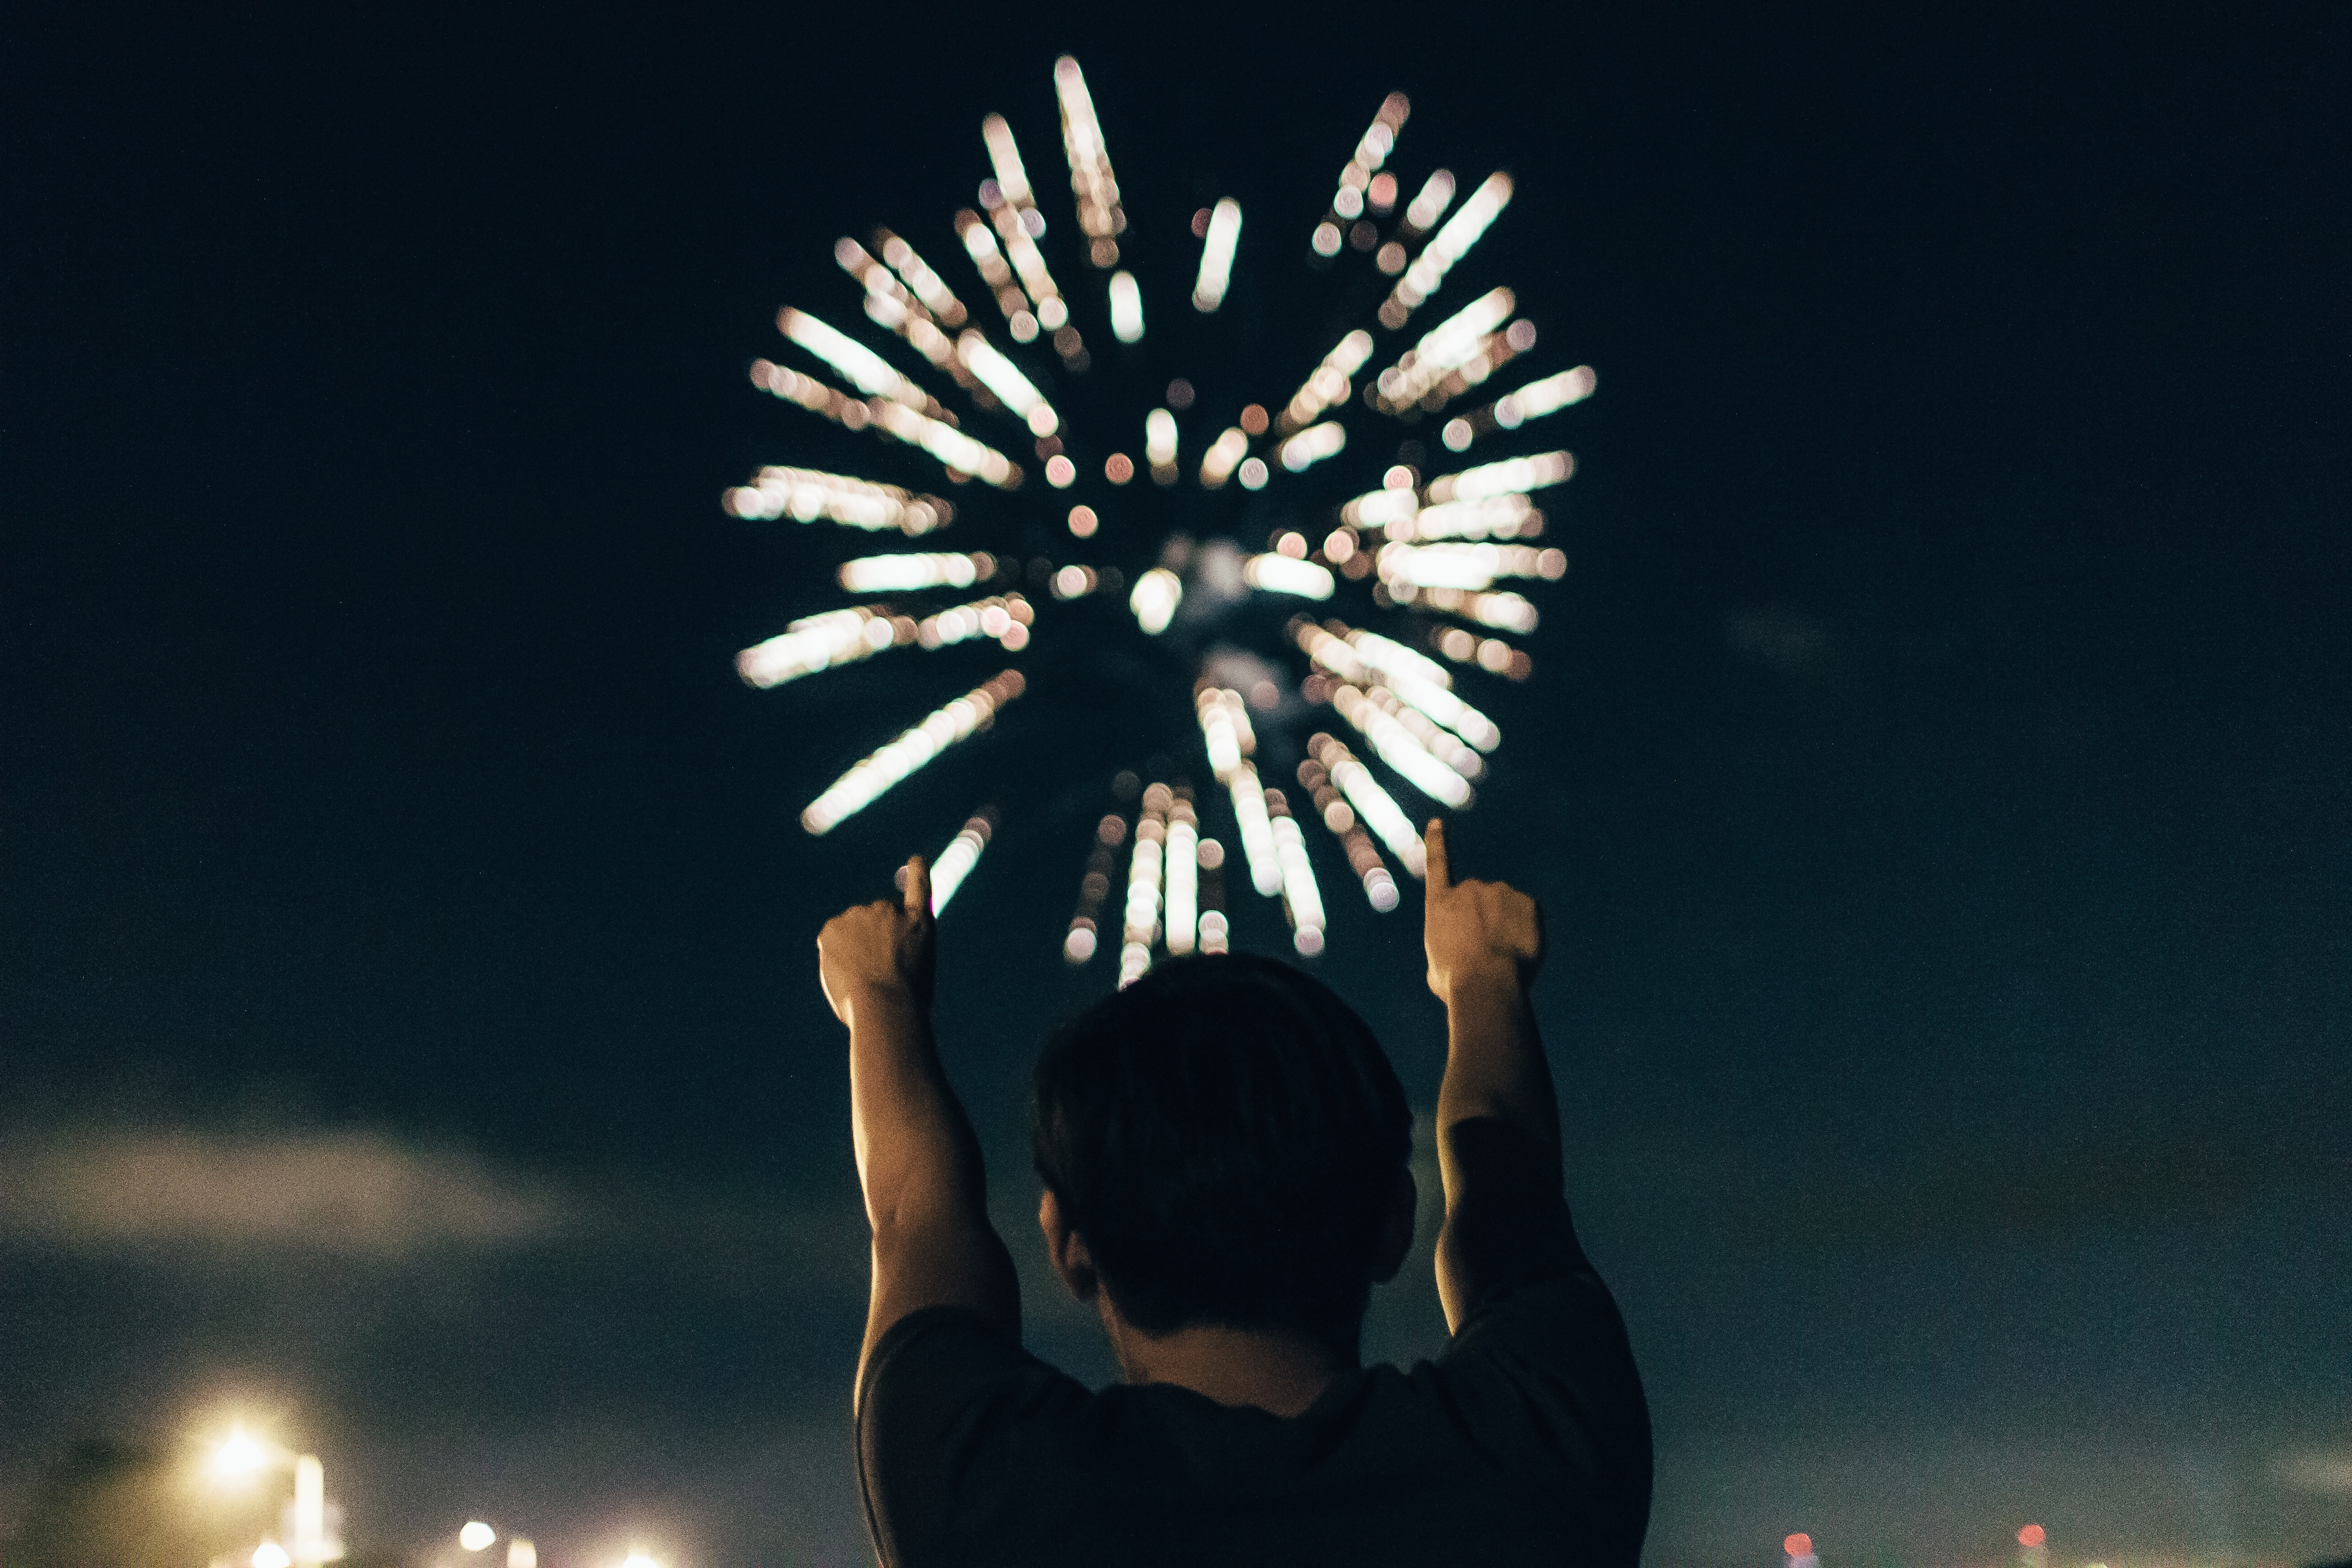 Firework exploding in the sky with a child in front